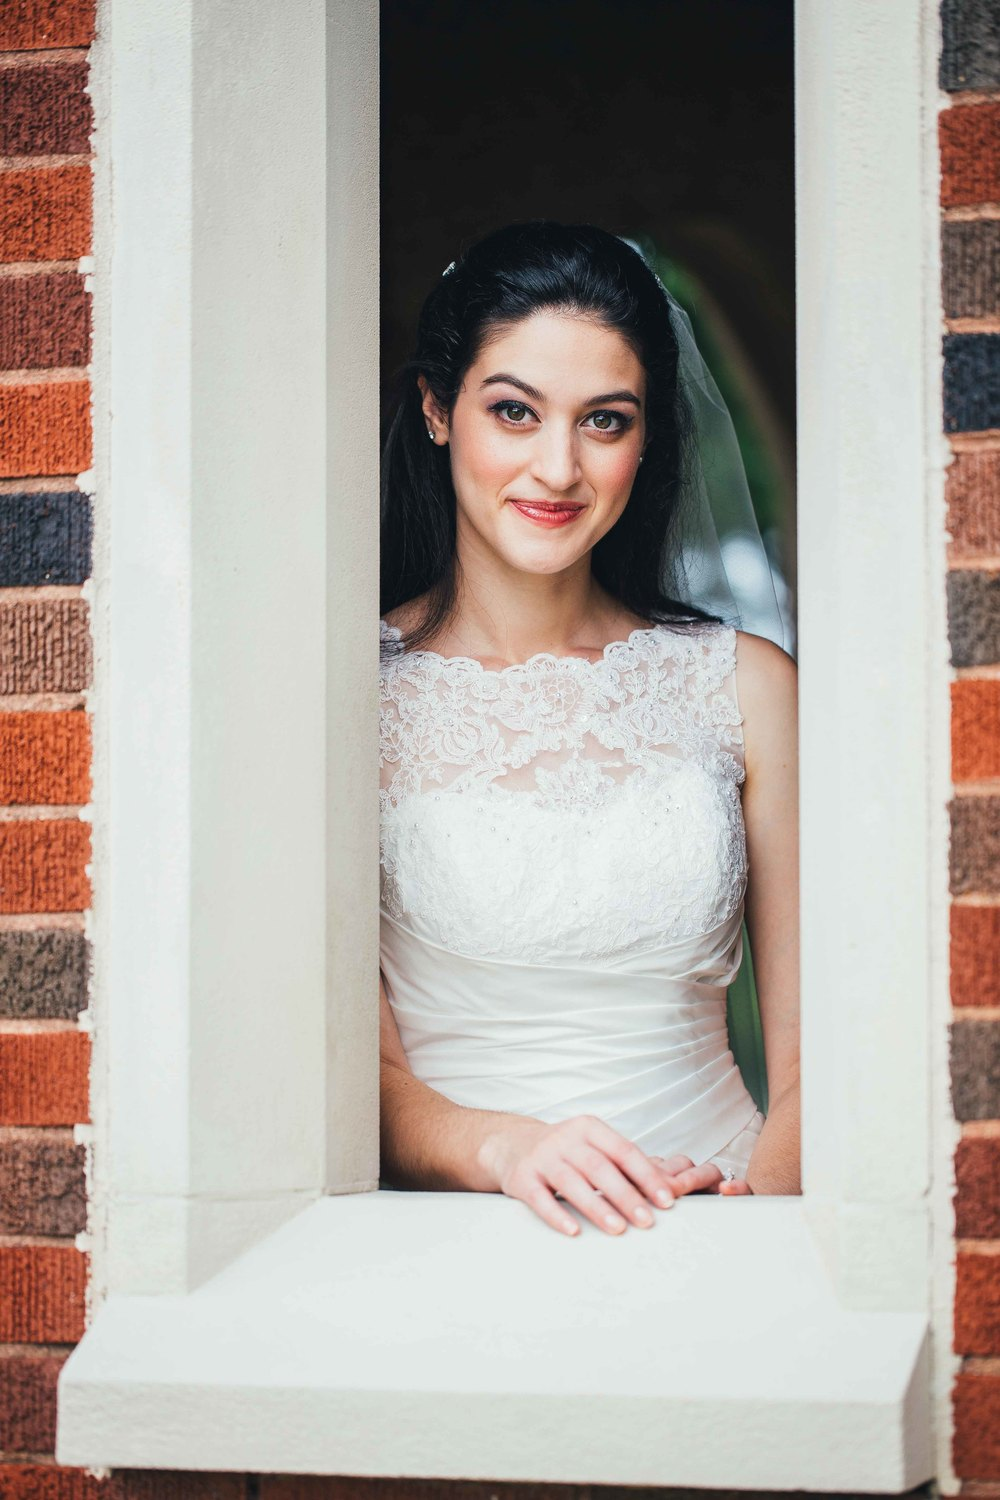 Belltower Bridal Portrait.jpg